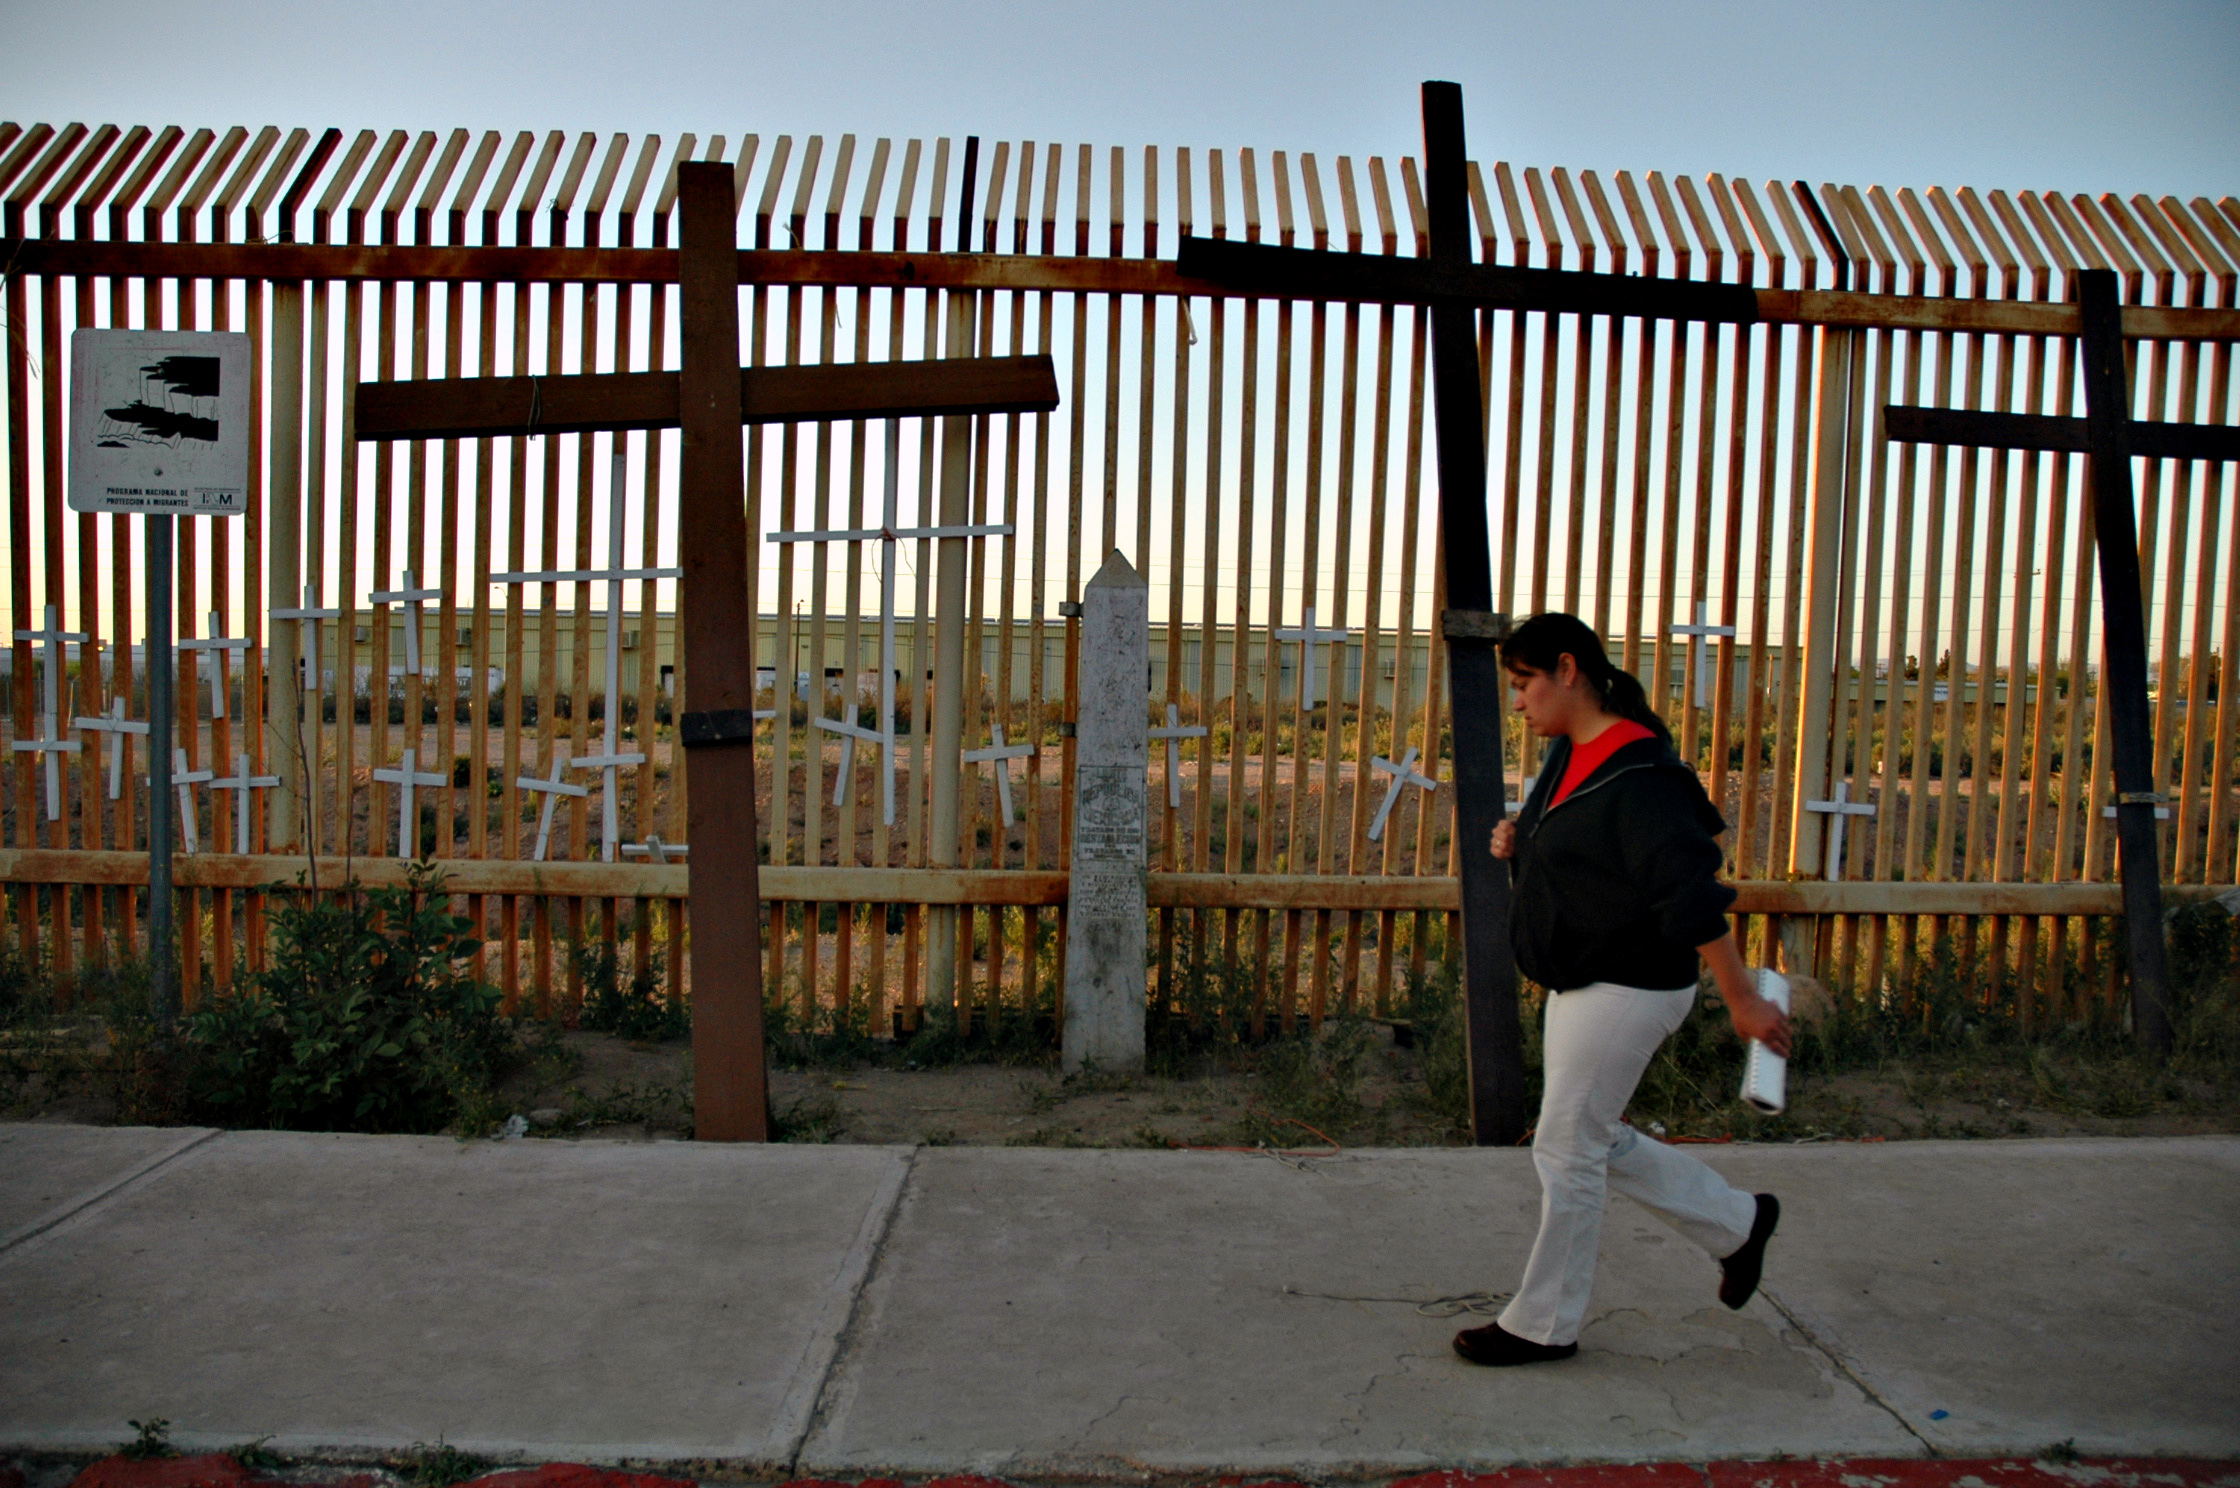 The border fence in Agua Prieta, Mexico, memorializes migrants who've died. Credit: Andy Isaacson